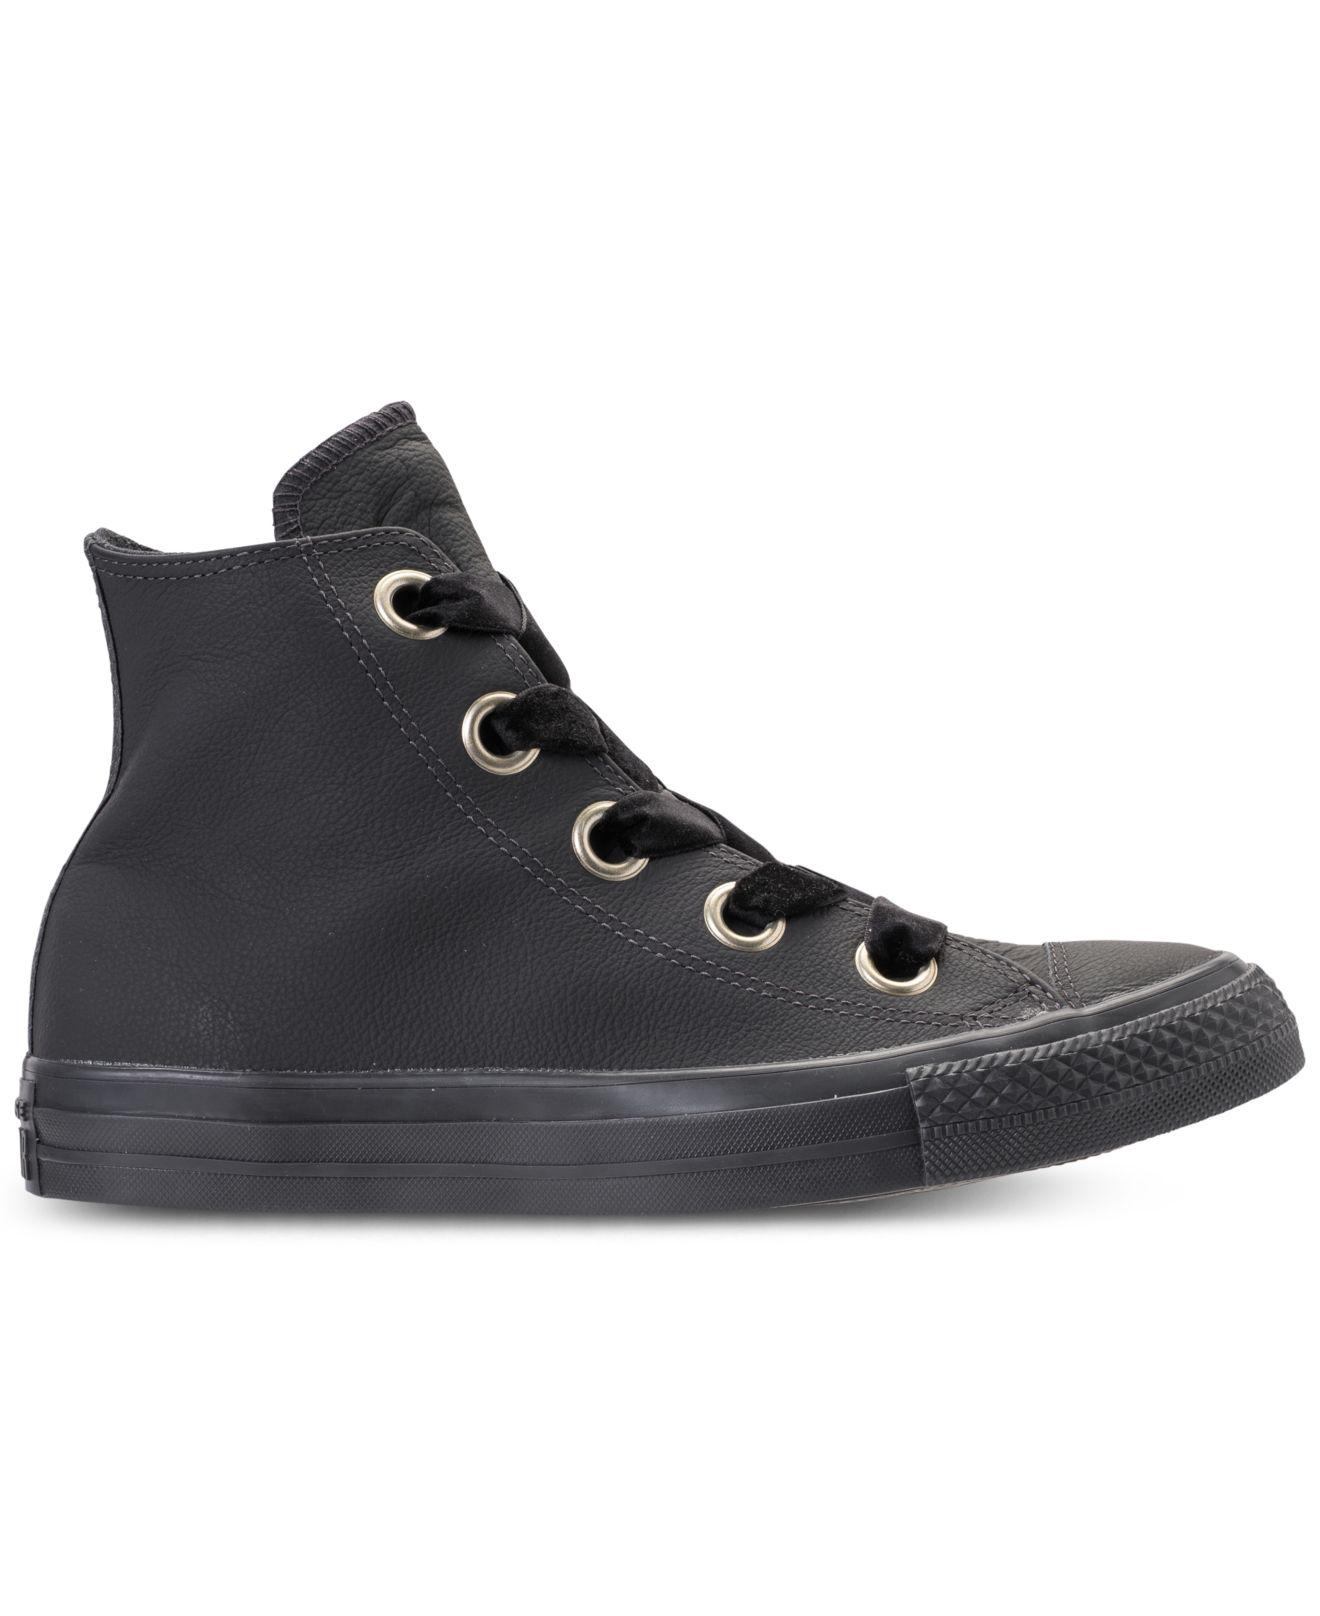 cd809c134e5f Lyst - Converse Chuck Taylor Big Eyelets High Top Casual Sneakers From  Finish Line in Black - Save 40%